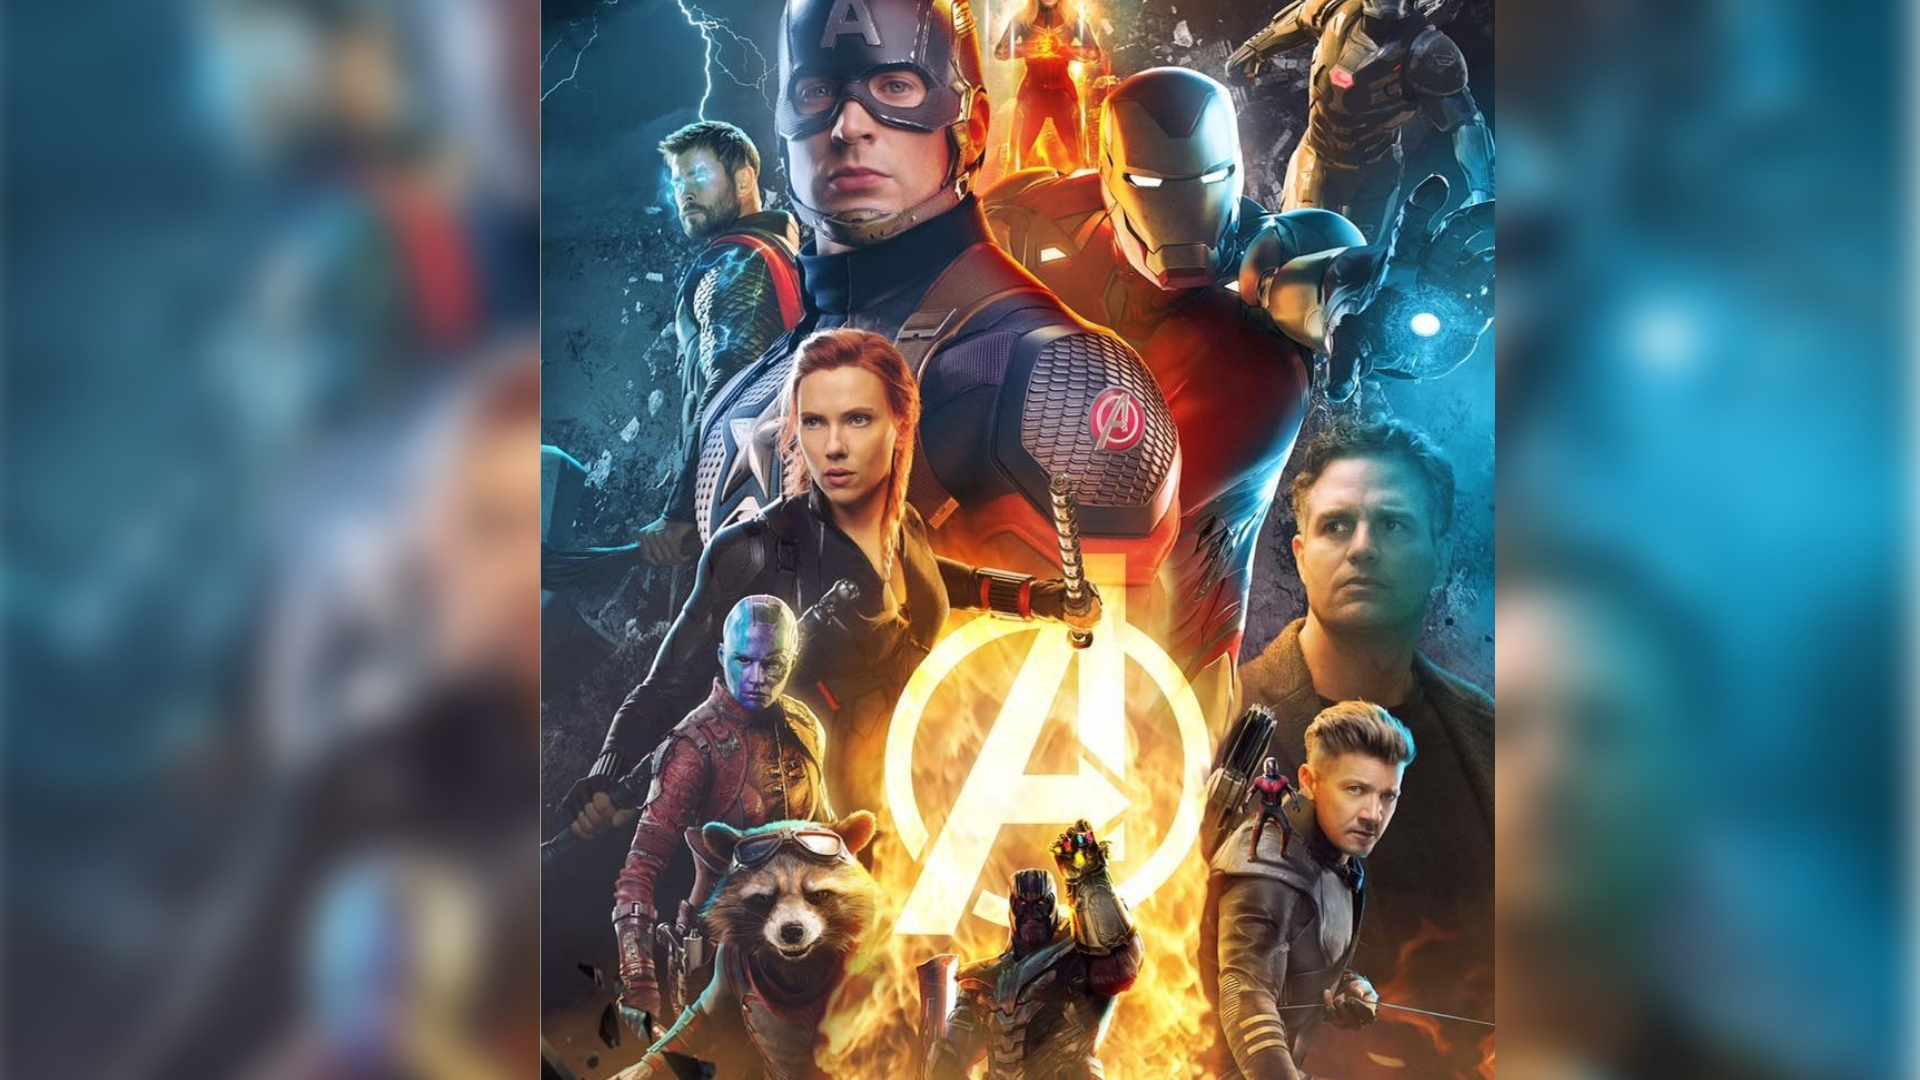 Review: 'Avengers: Endgame' Is Marvel's Machine in High Gear